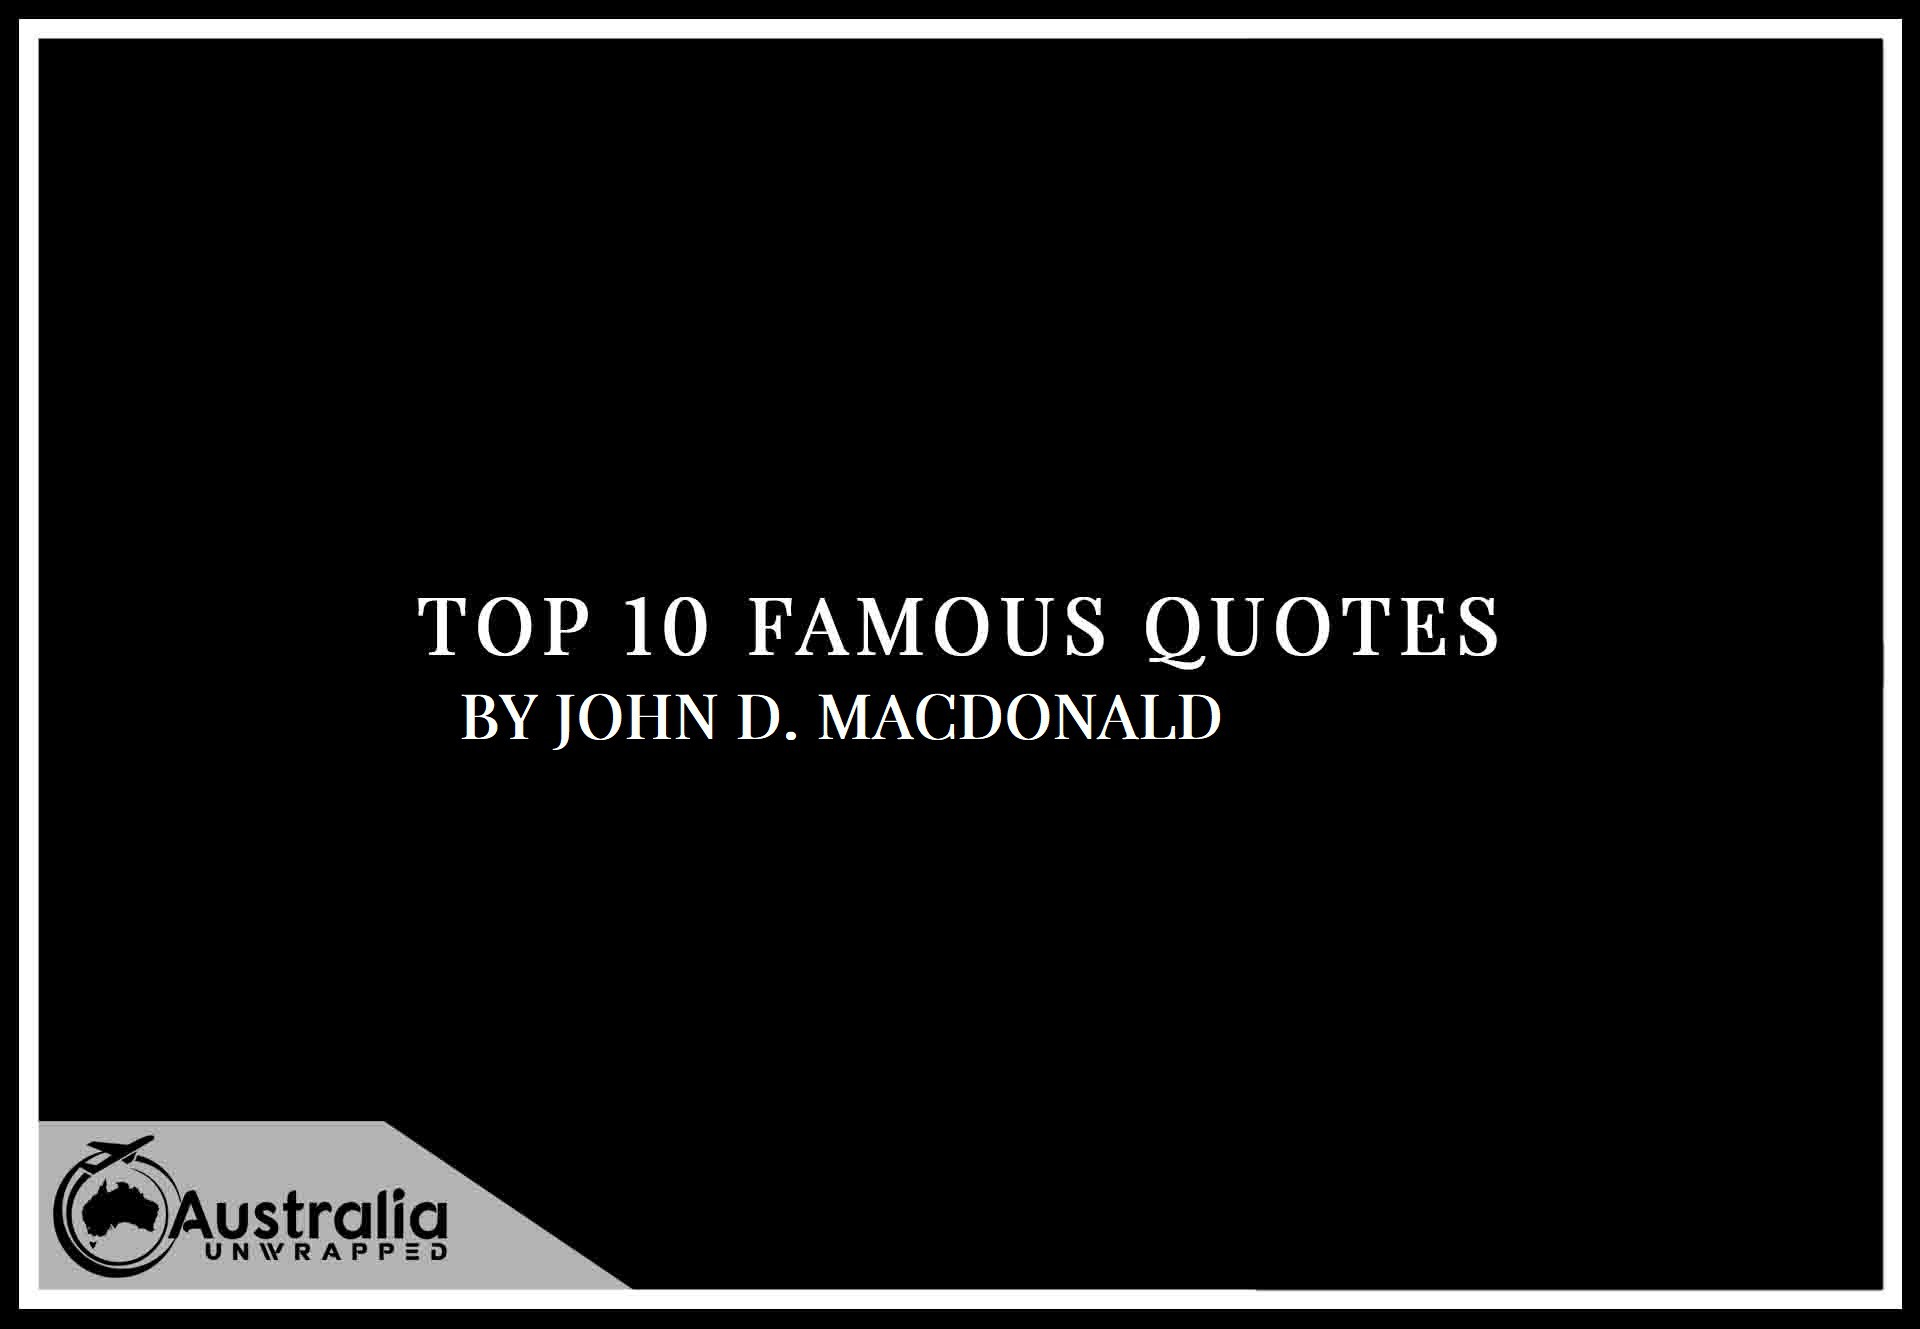 Top 10 Famous Quotes by Author John D. MacDonald